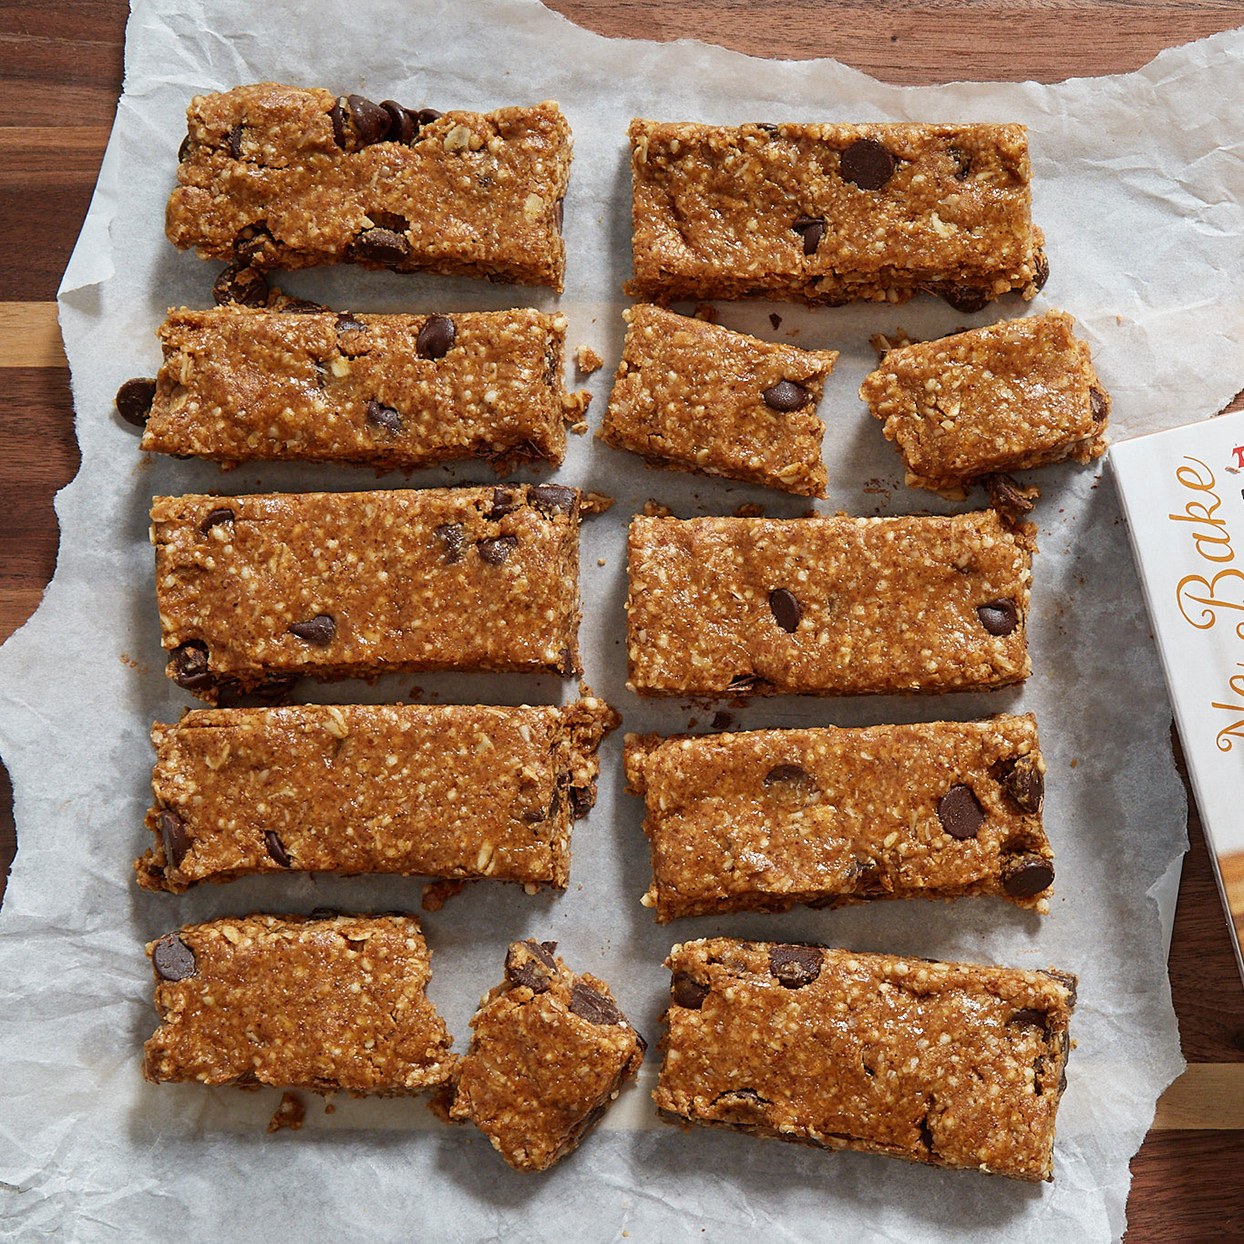 Trader Joe's No-Bake Chocolate Peanut Butter Bars